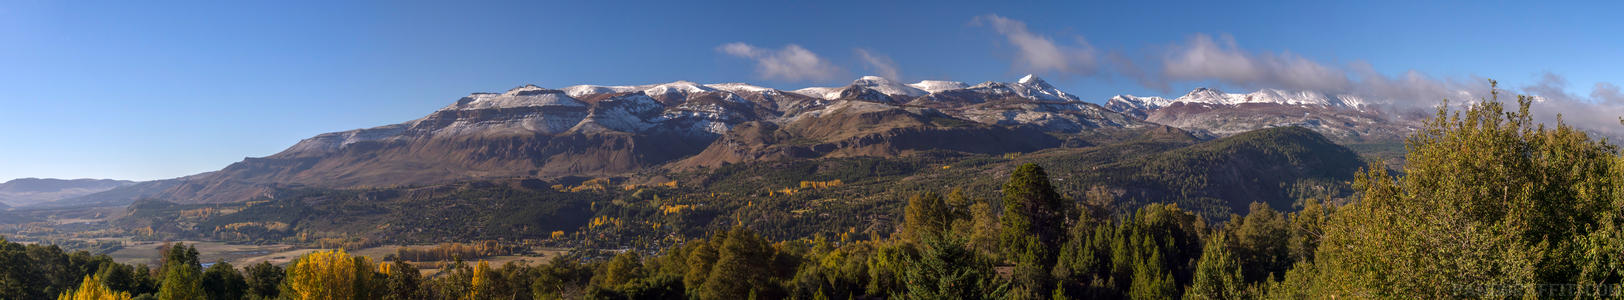 Mountains Along Ruta 62 - A snow covered range of mountains along route 62 in the Neuquen region